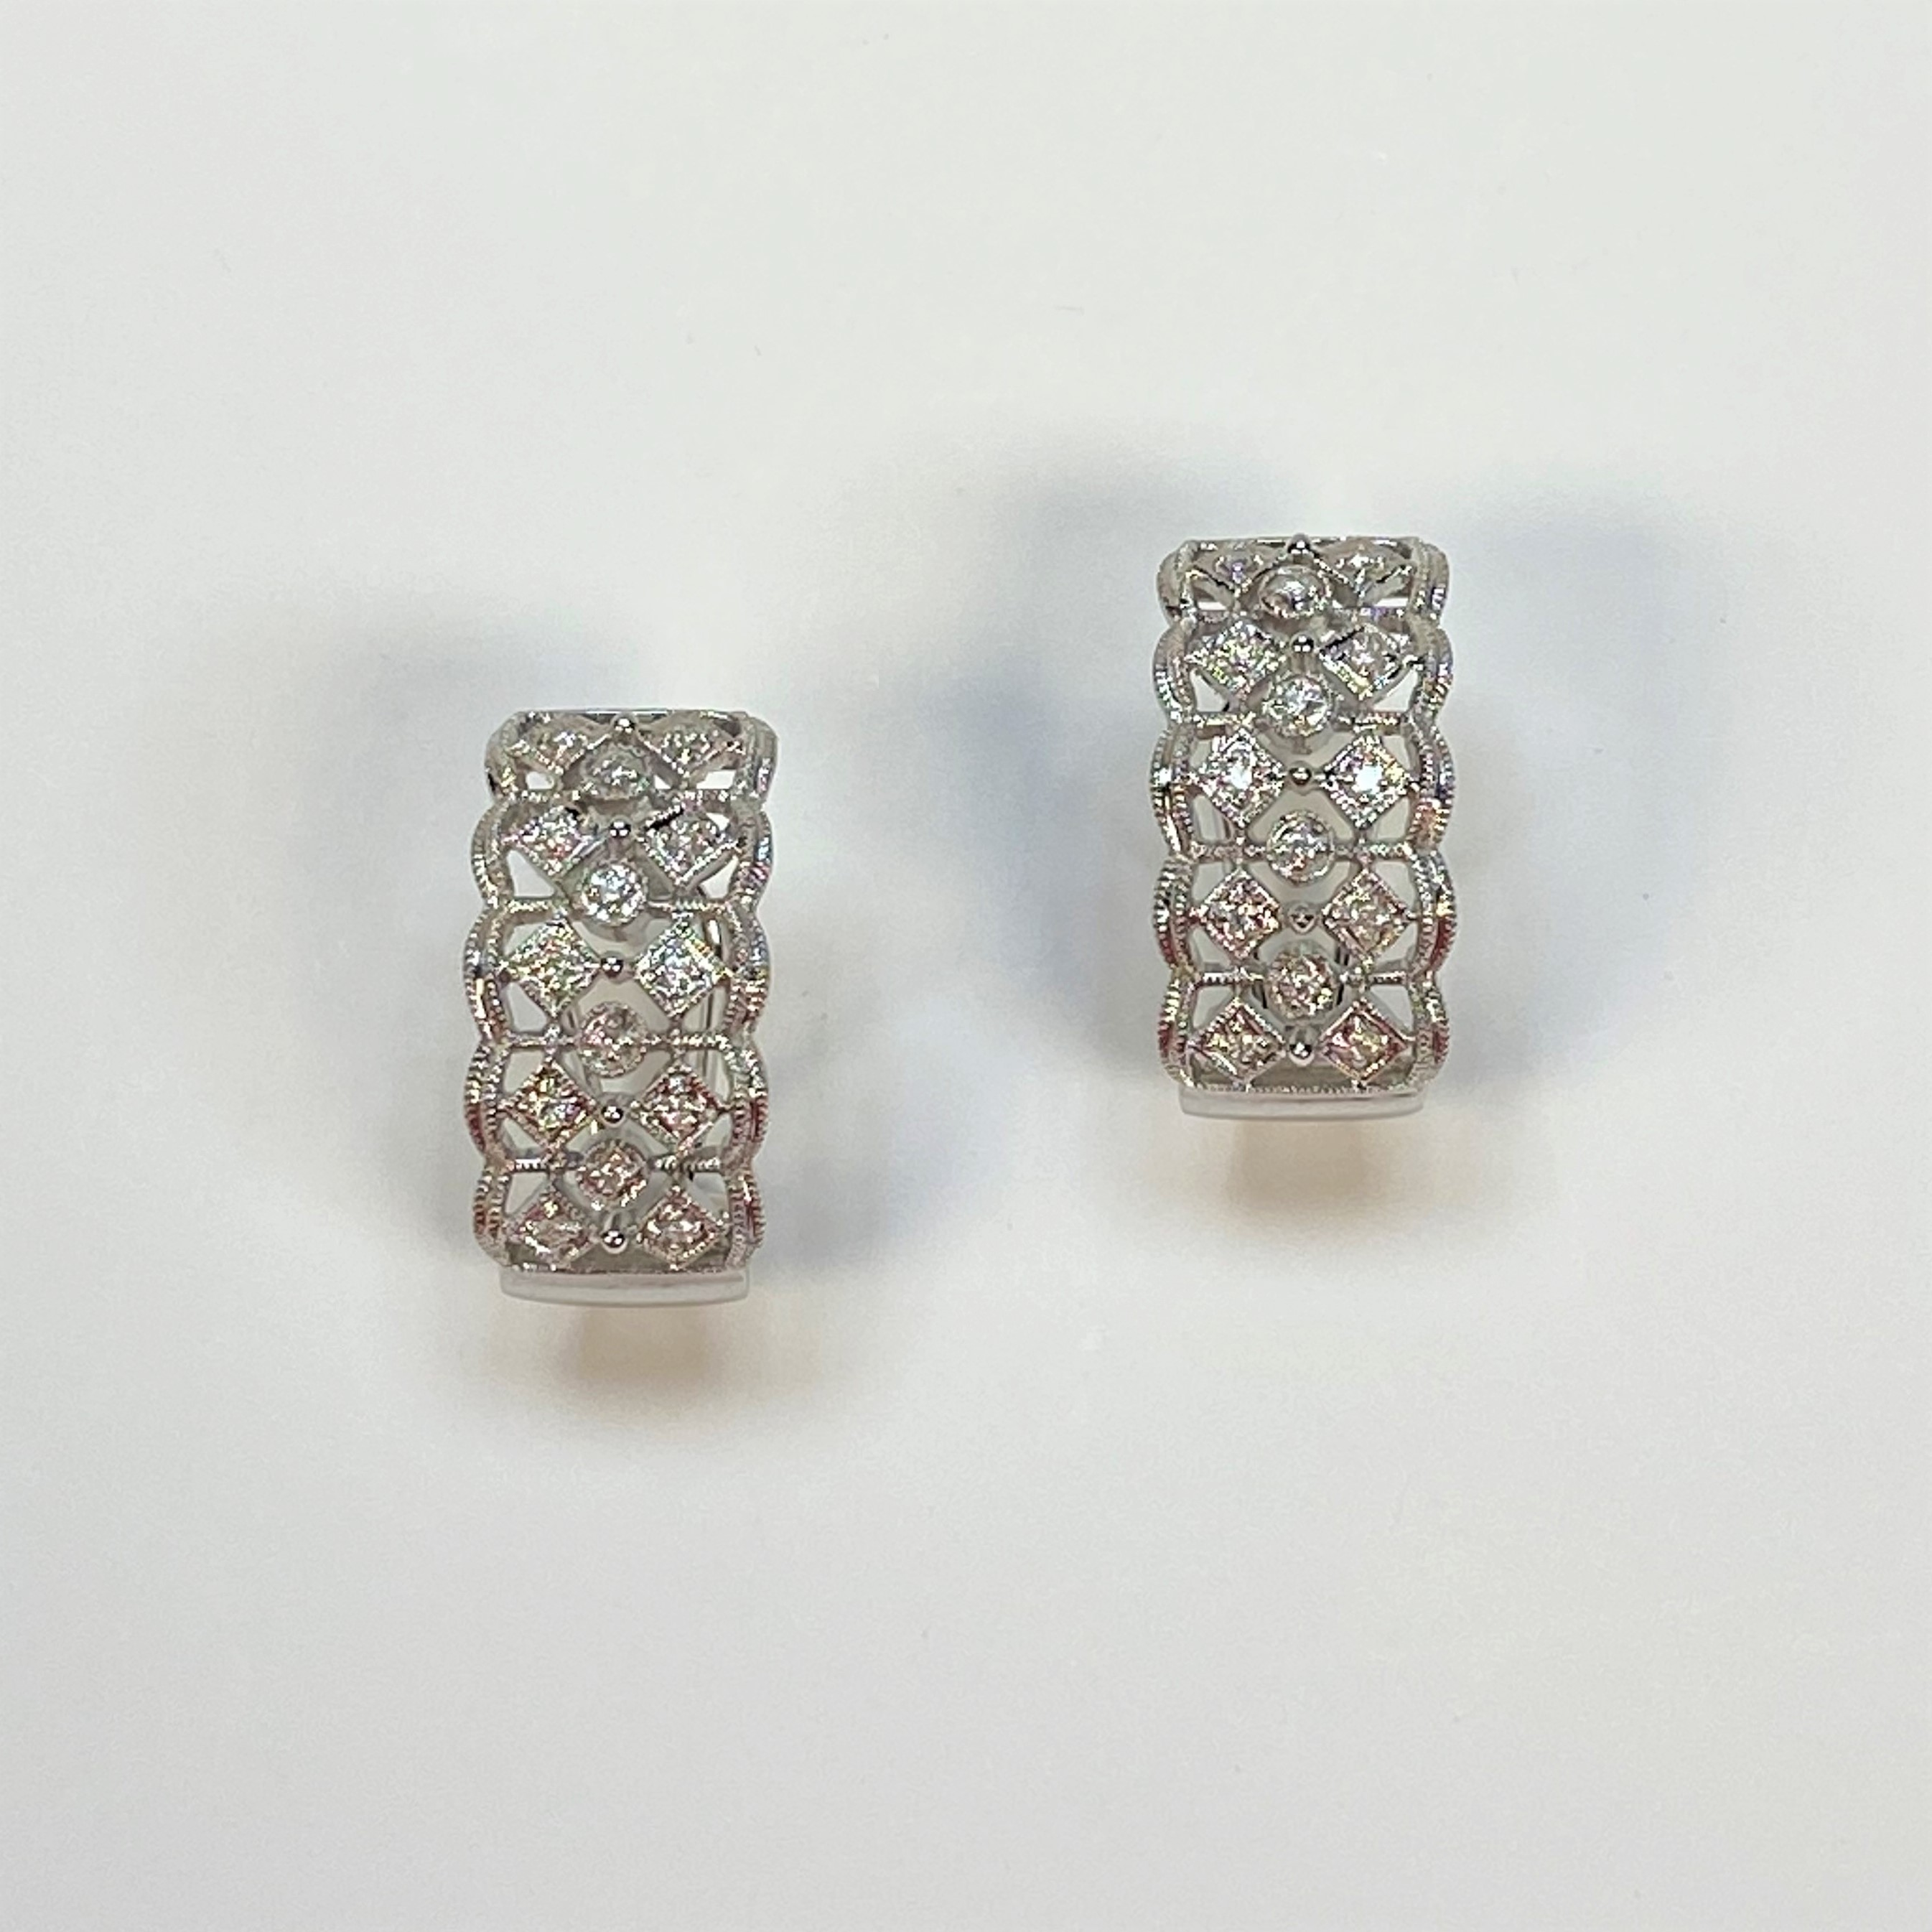 1/3 Carats Total Weight Diamond Earrings